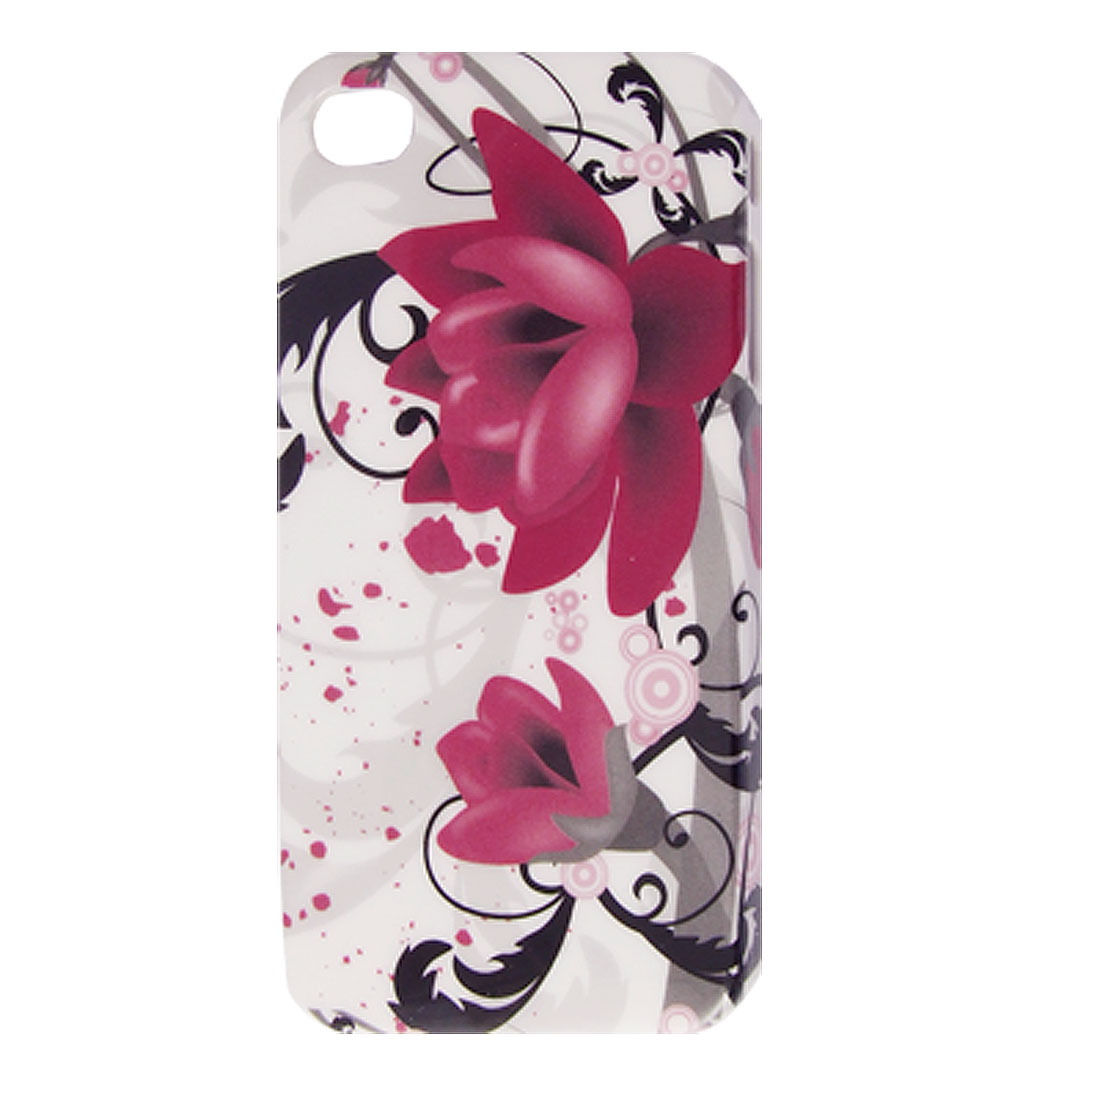 IMD Amaranth Flowers Hard Plastic Back Case for iPhone 4 4G